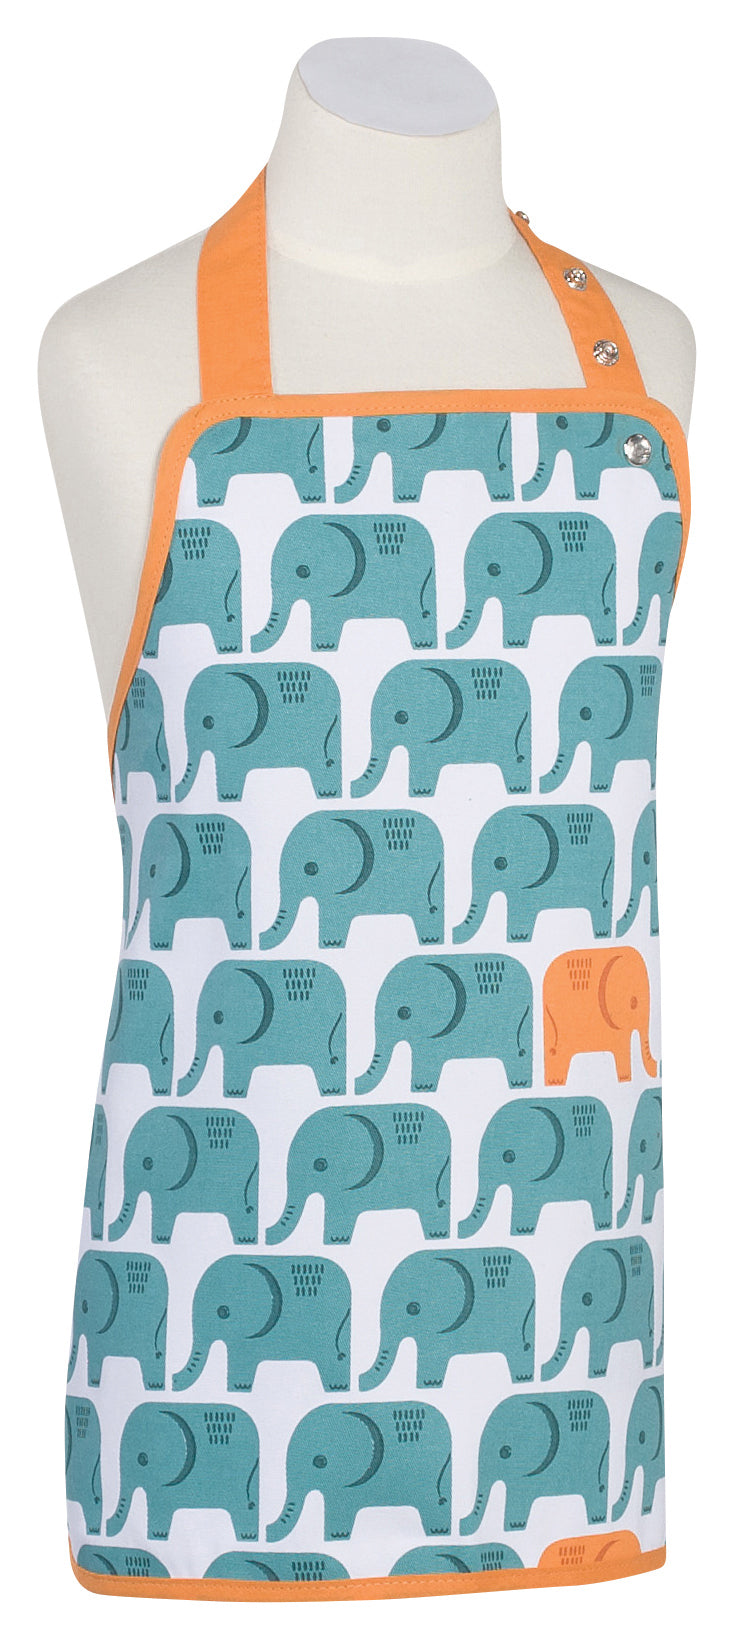 Turquoise Orange Elephant Childs Apron